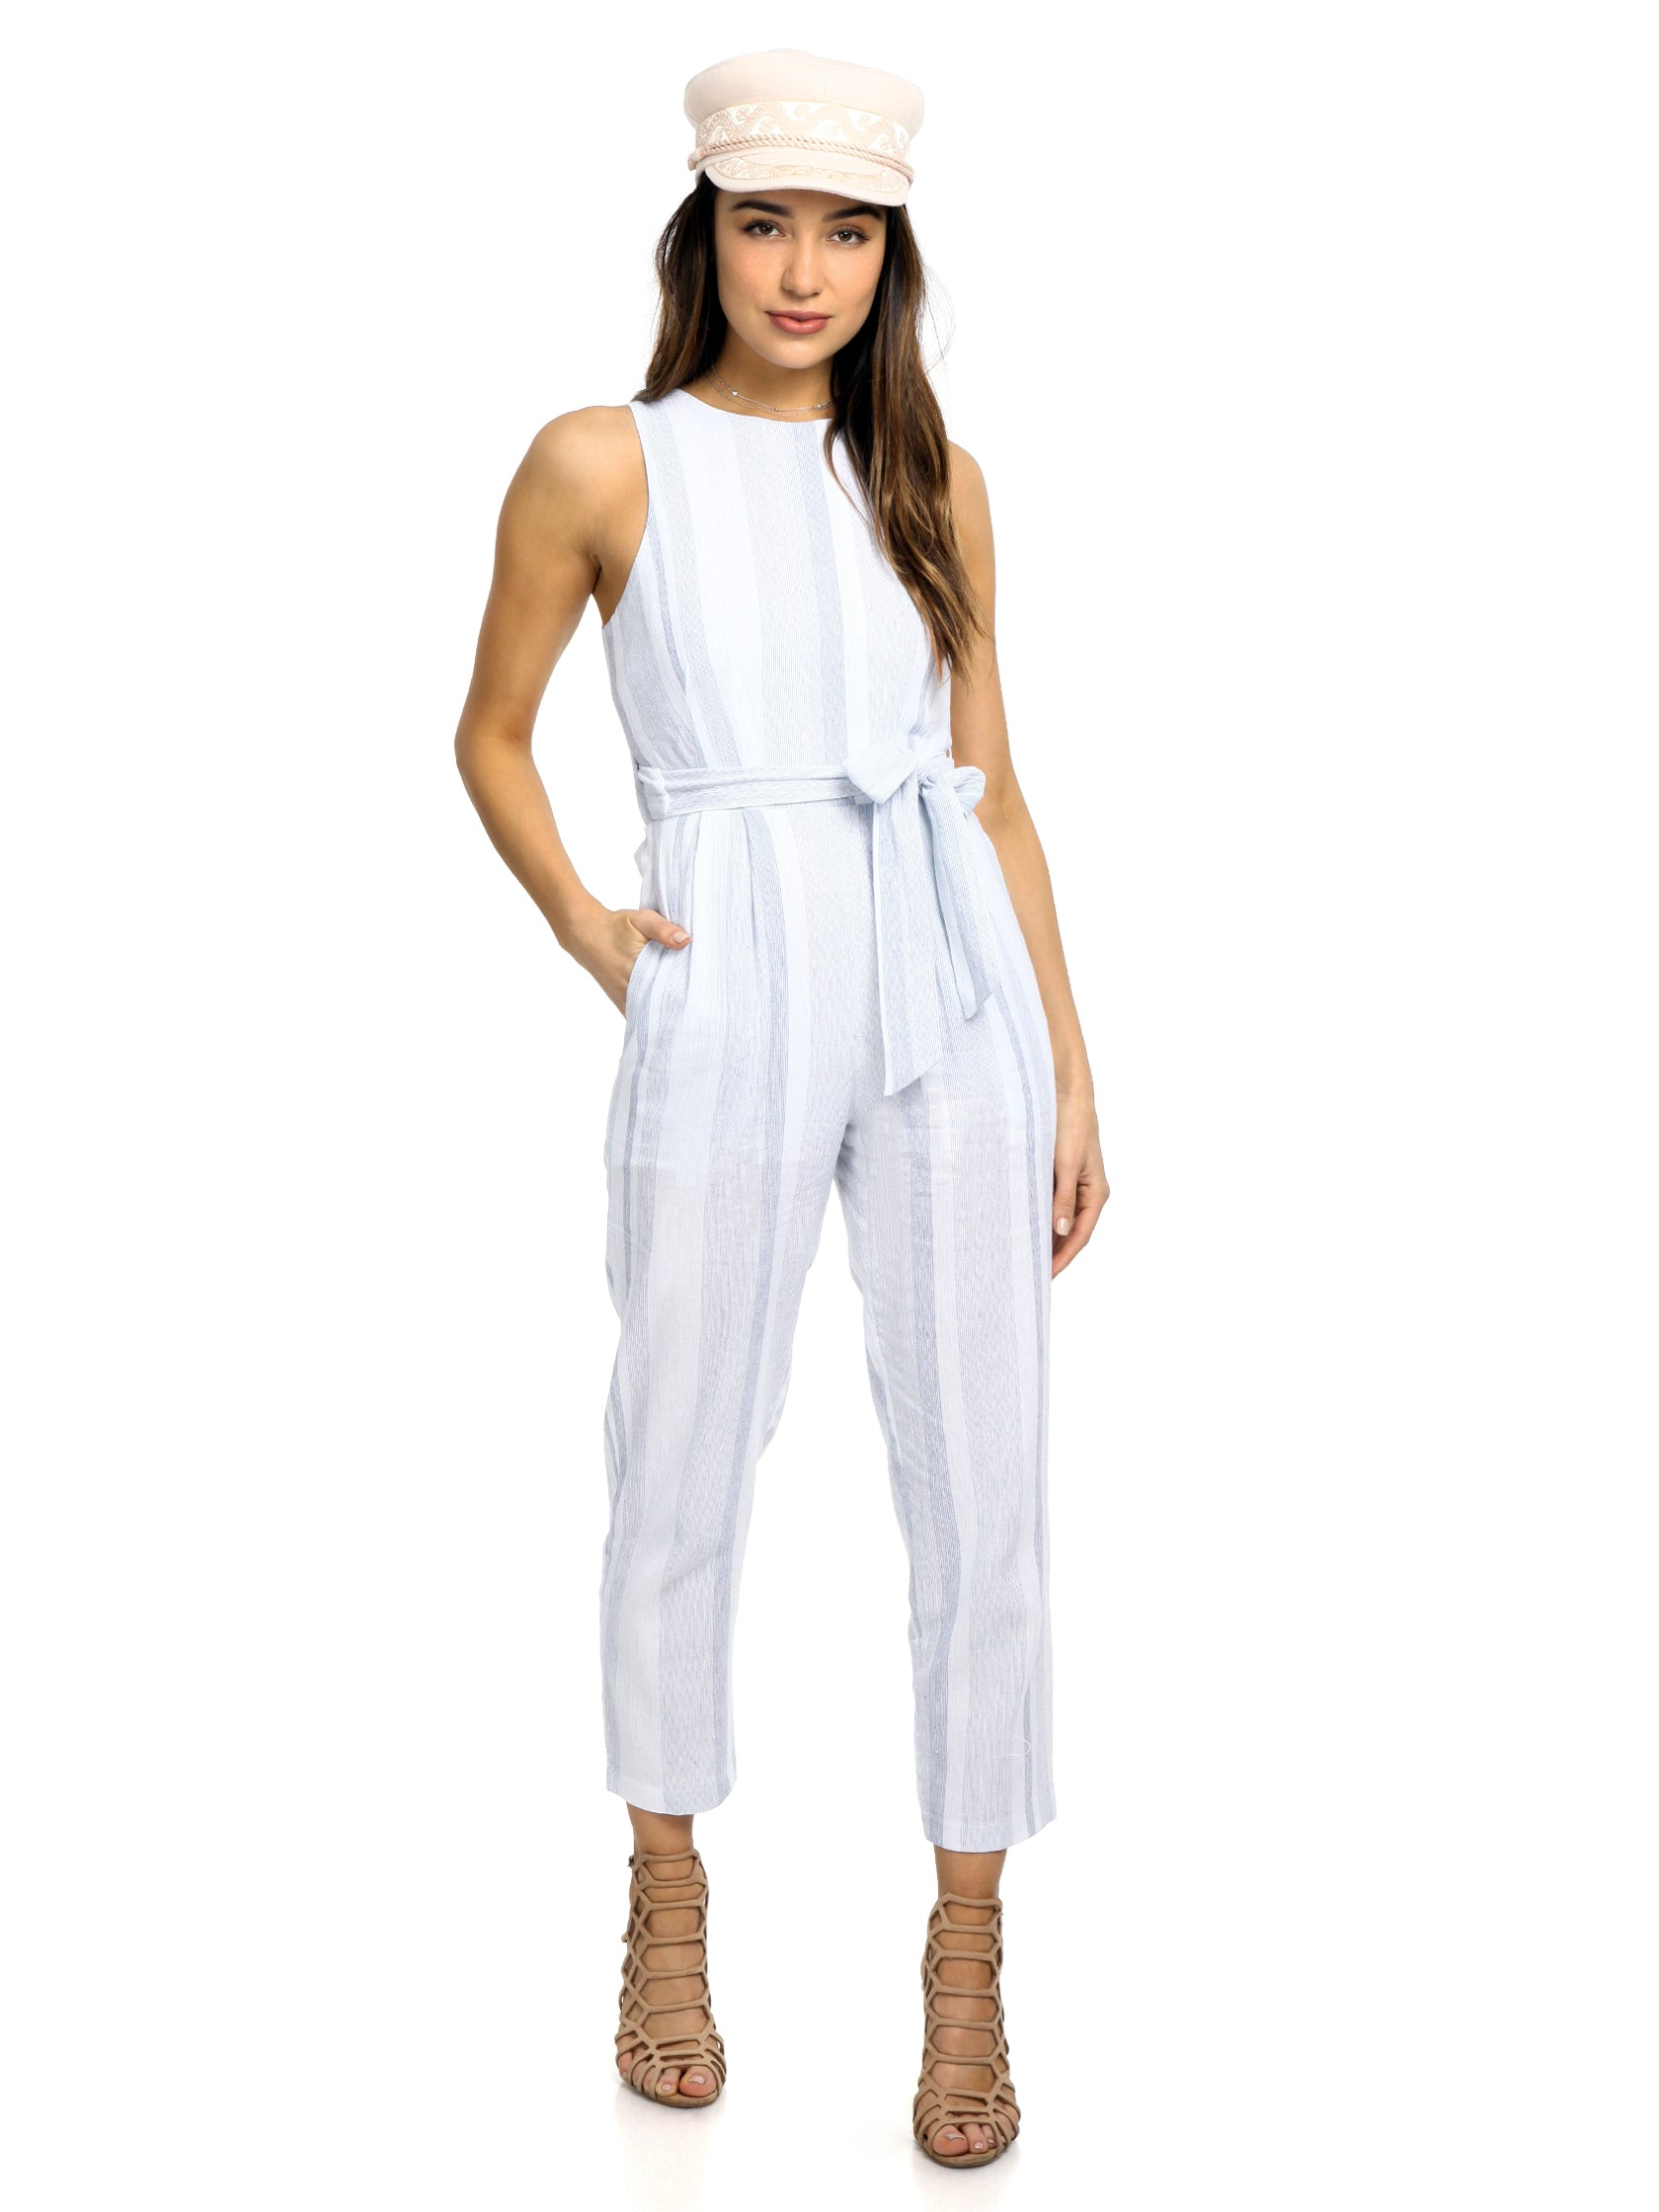 Girl outfit in a jumpsuit rental from ASTR called Presley Jumpsuit